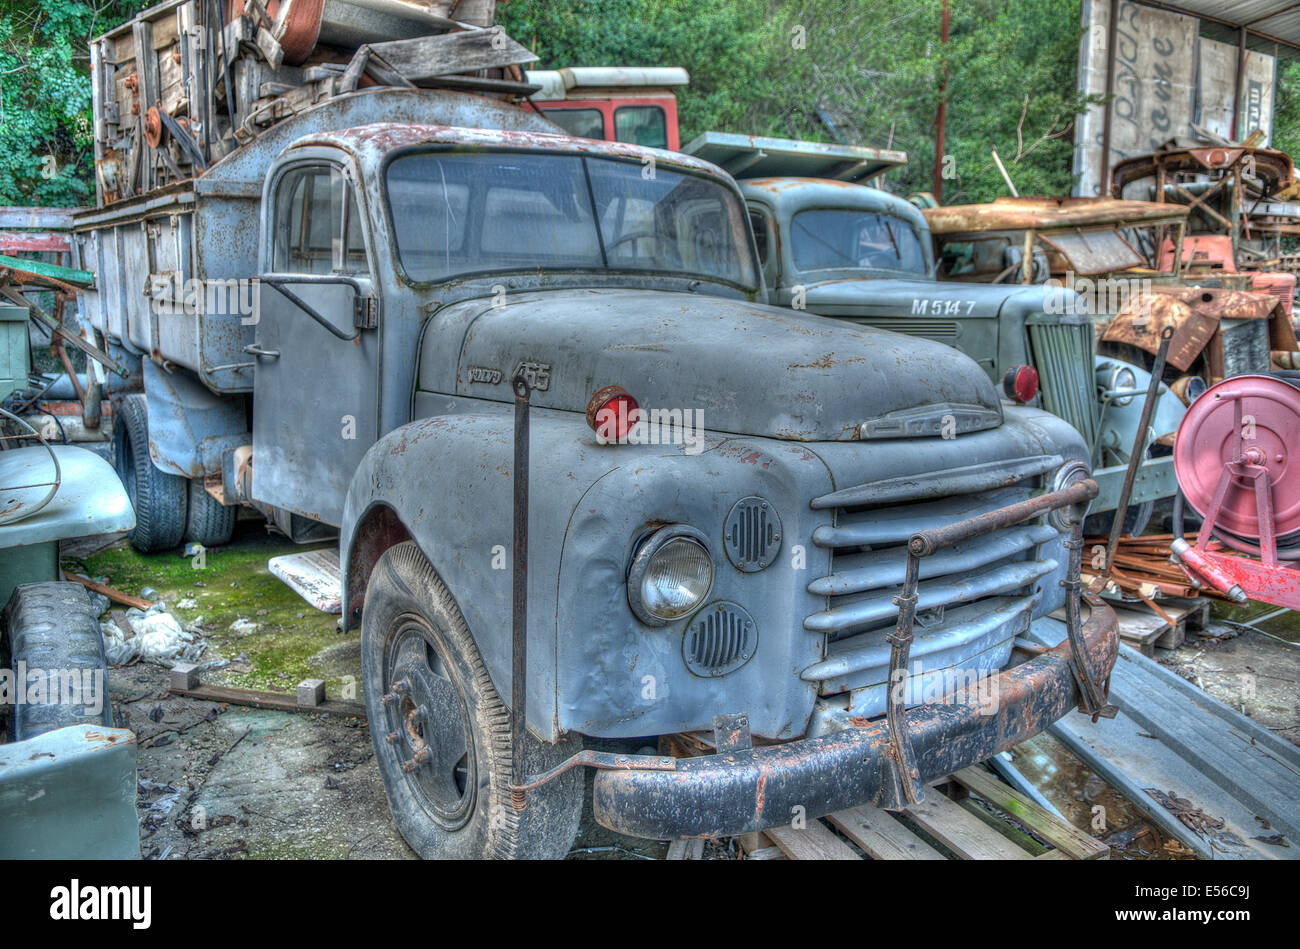 Junkyards Stock Photos & Junkyards Stock Images - Alamy